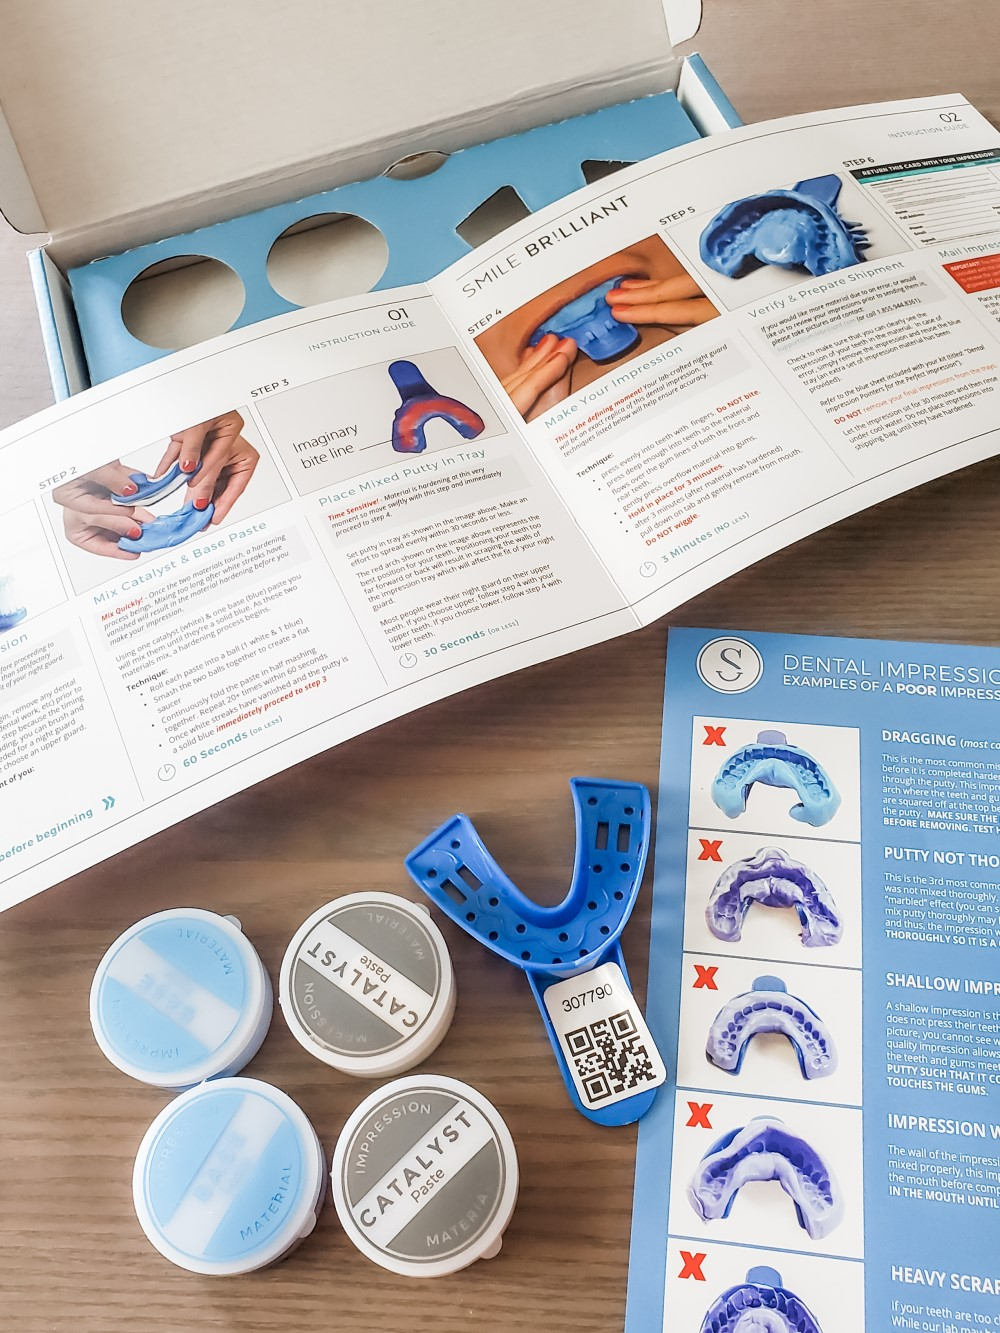 Smile Brilliant DIY Impression Kit with Instructions and Materials